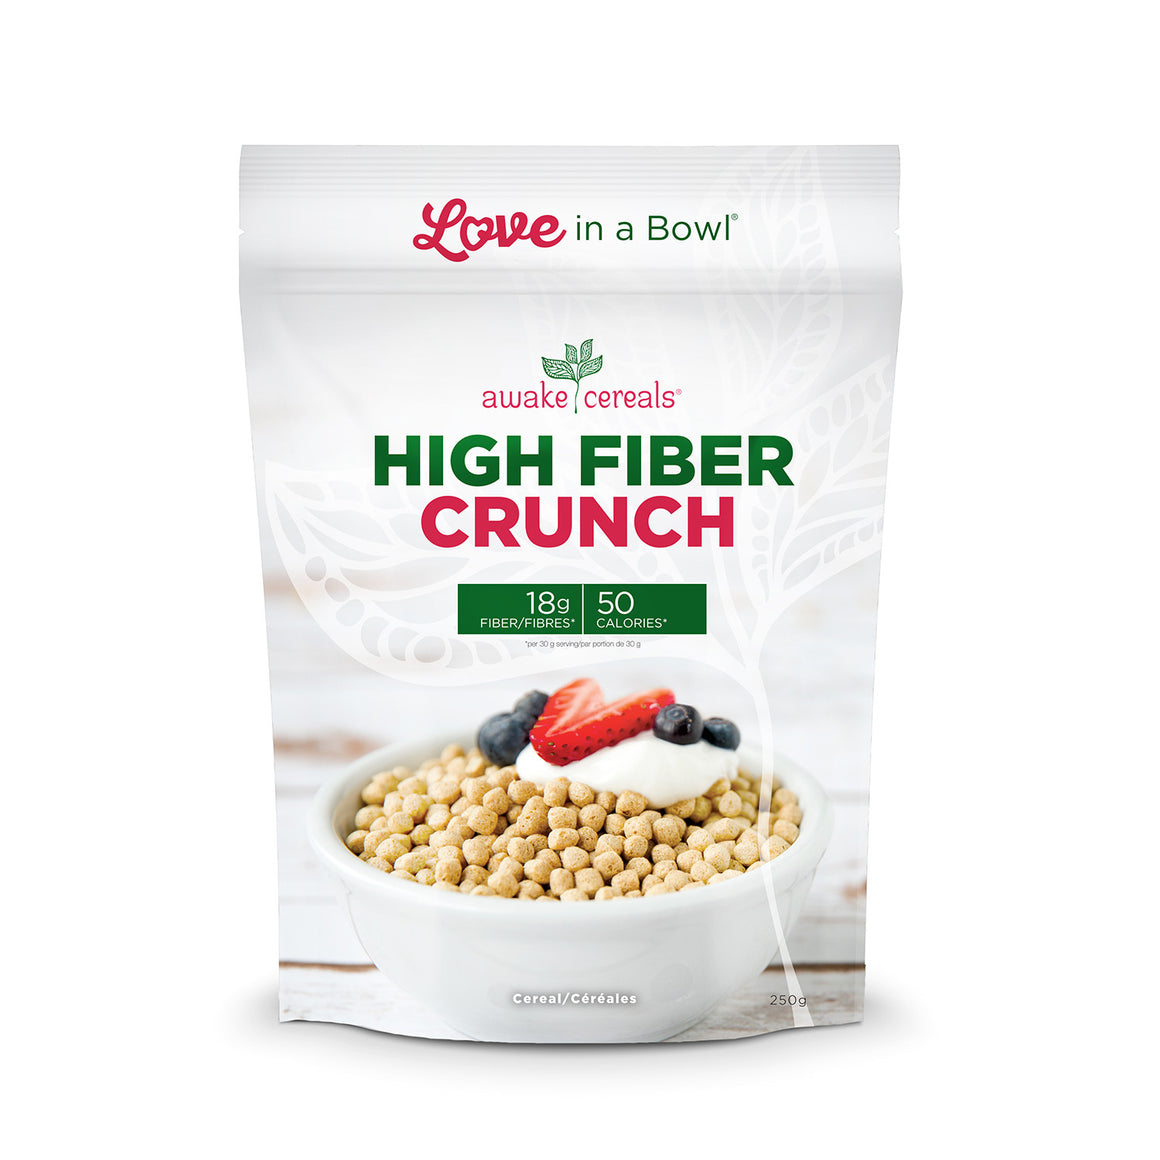 High Fiber Crunch - 250 grams per bag                                     sales are 12 per box                                                                            and free shipping for 2 or more cases